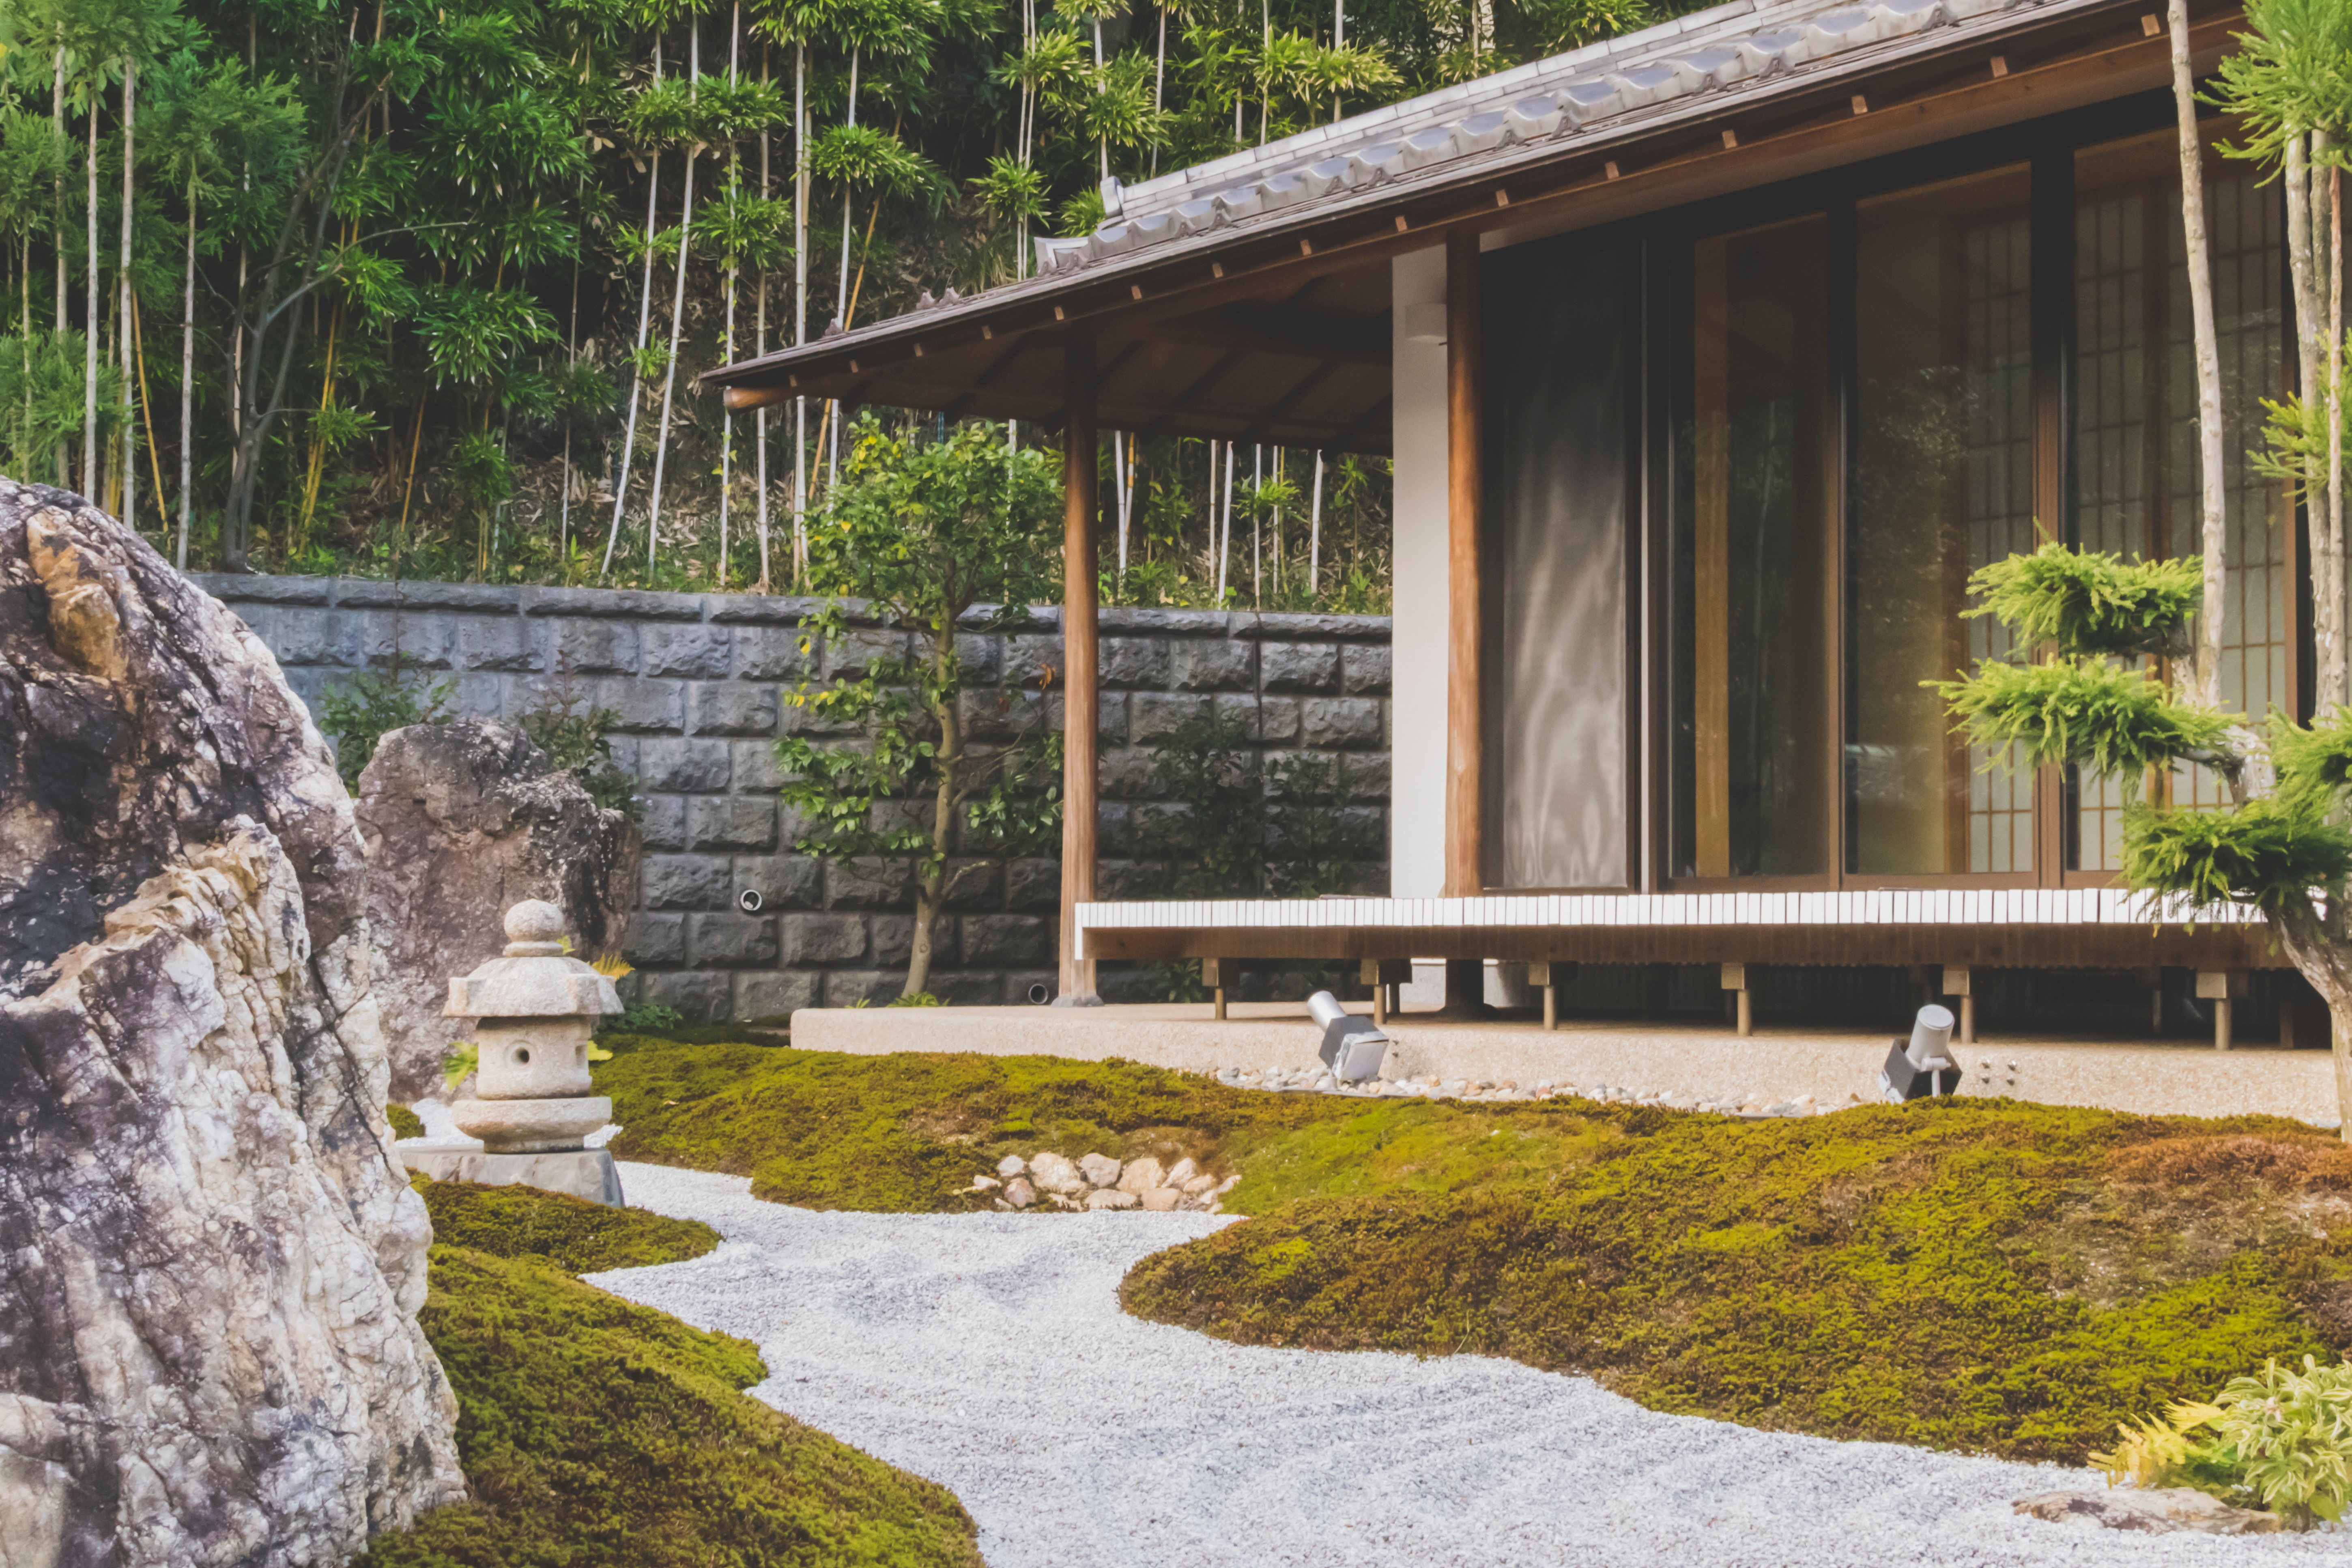 10 Modern And Simple Backyard Landscaping Ideas For 2018 Landcrafters with regard to Modern Landscaping Ideas For Backyard